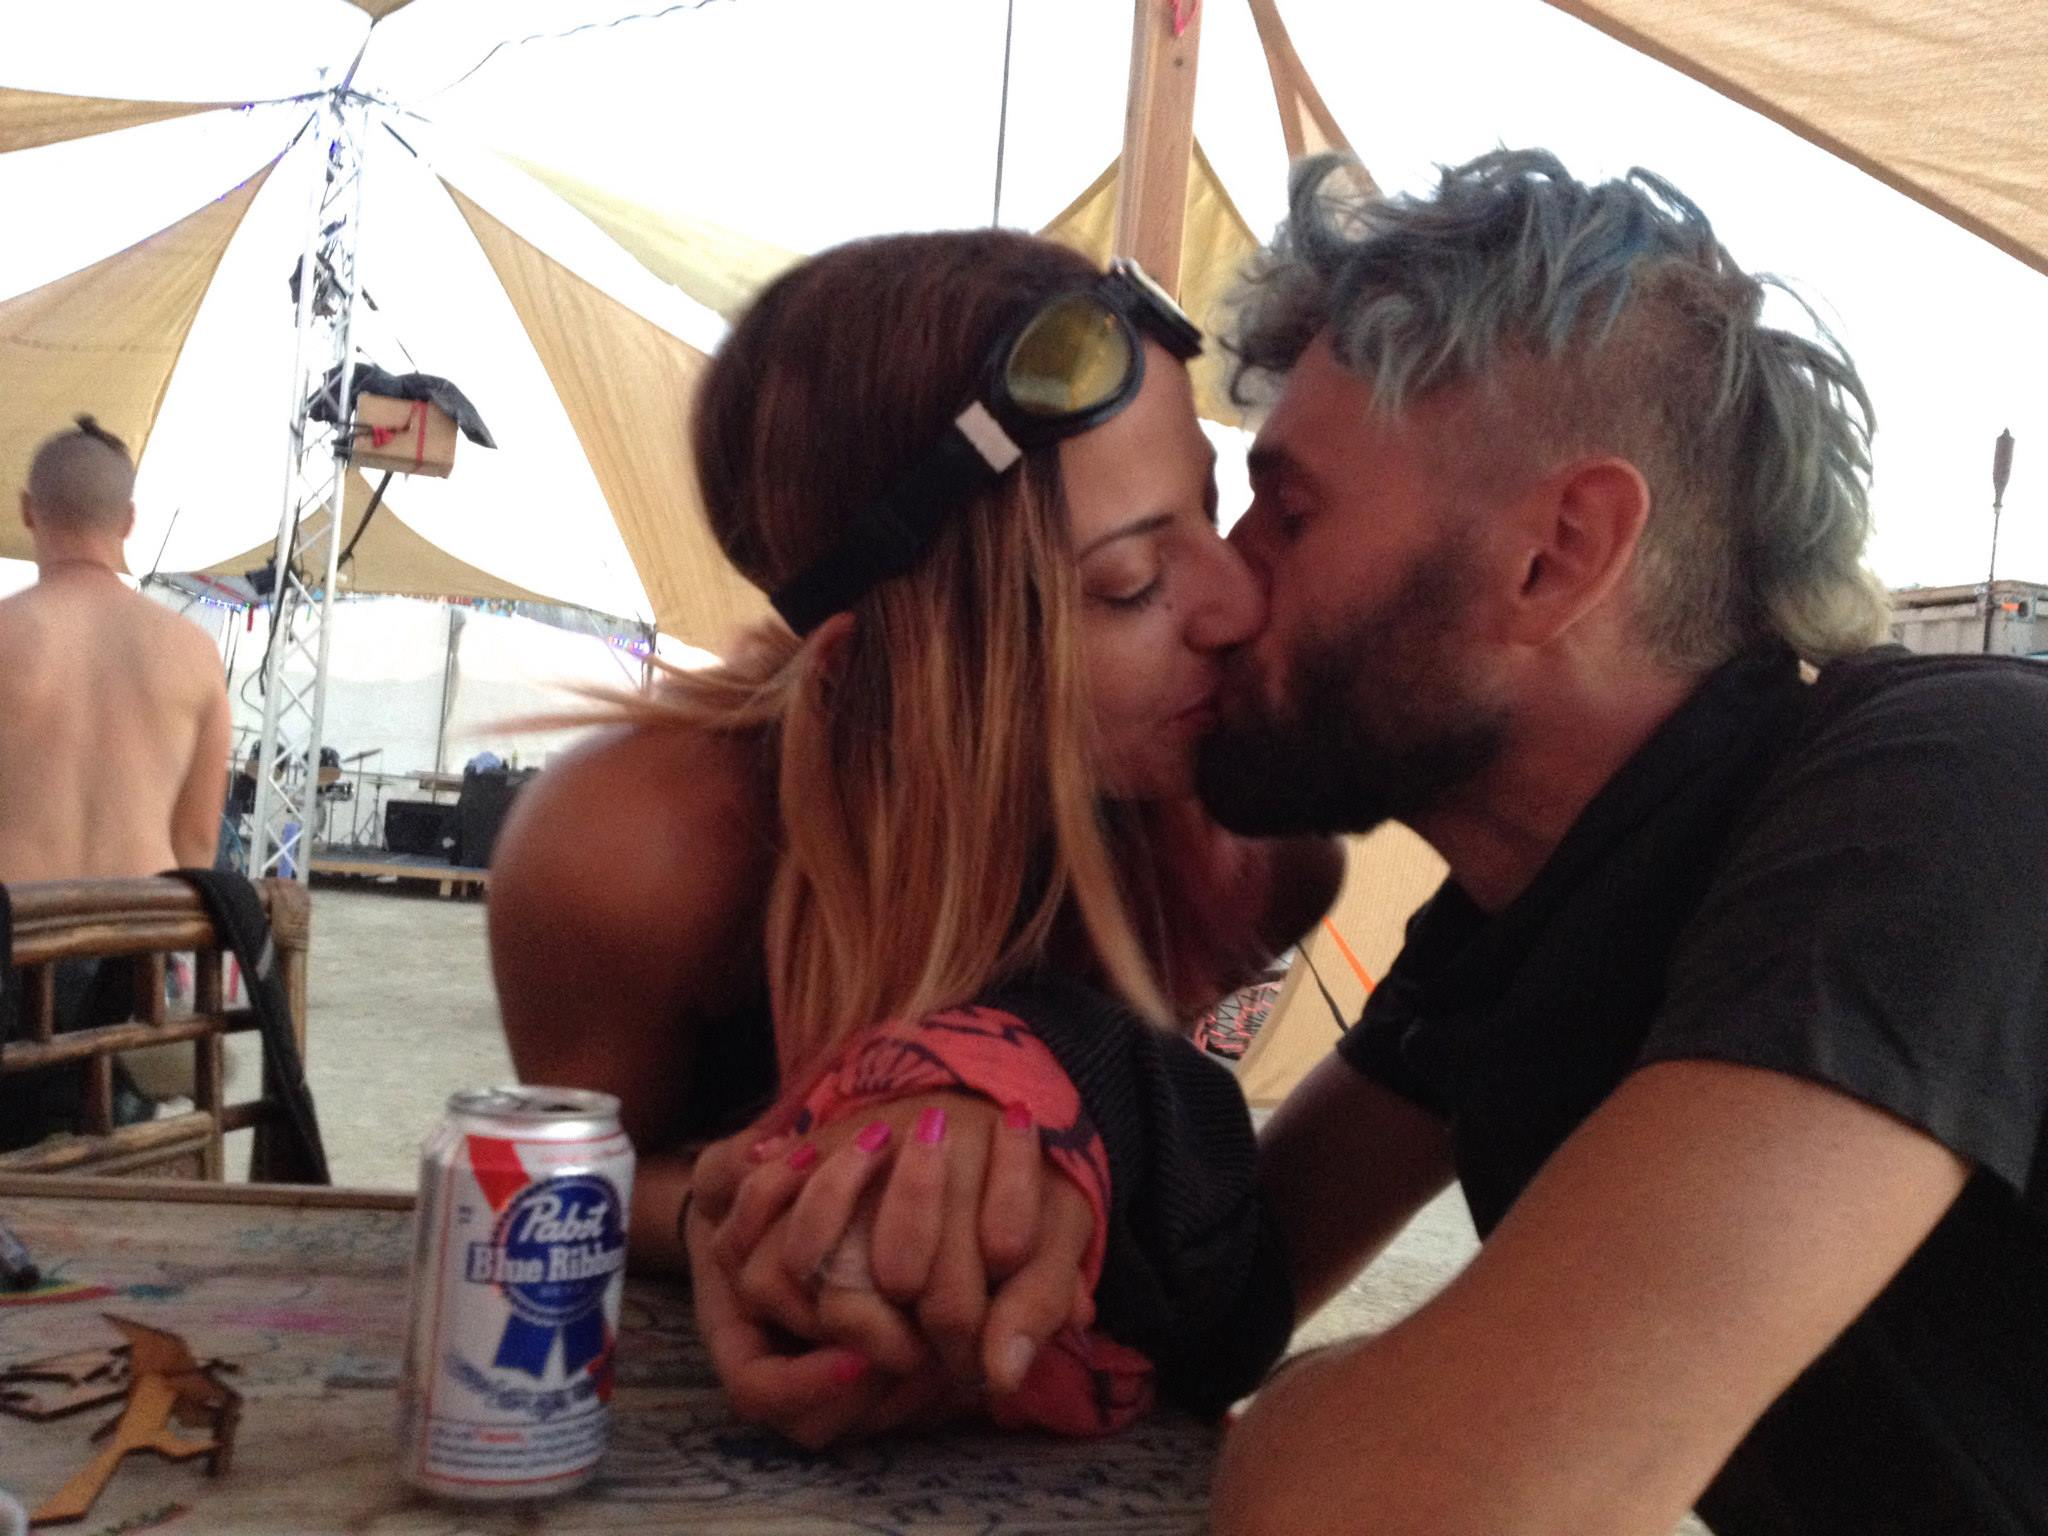 In love at Burning Man